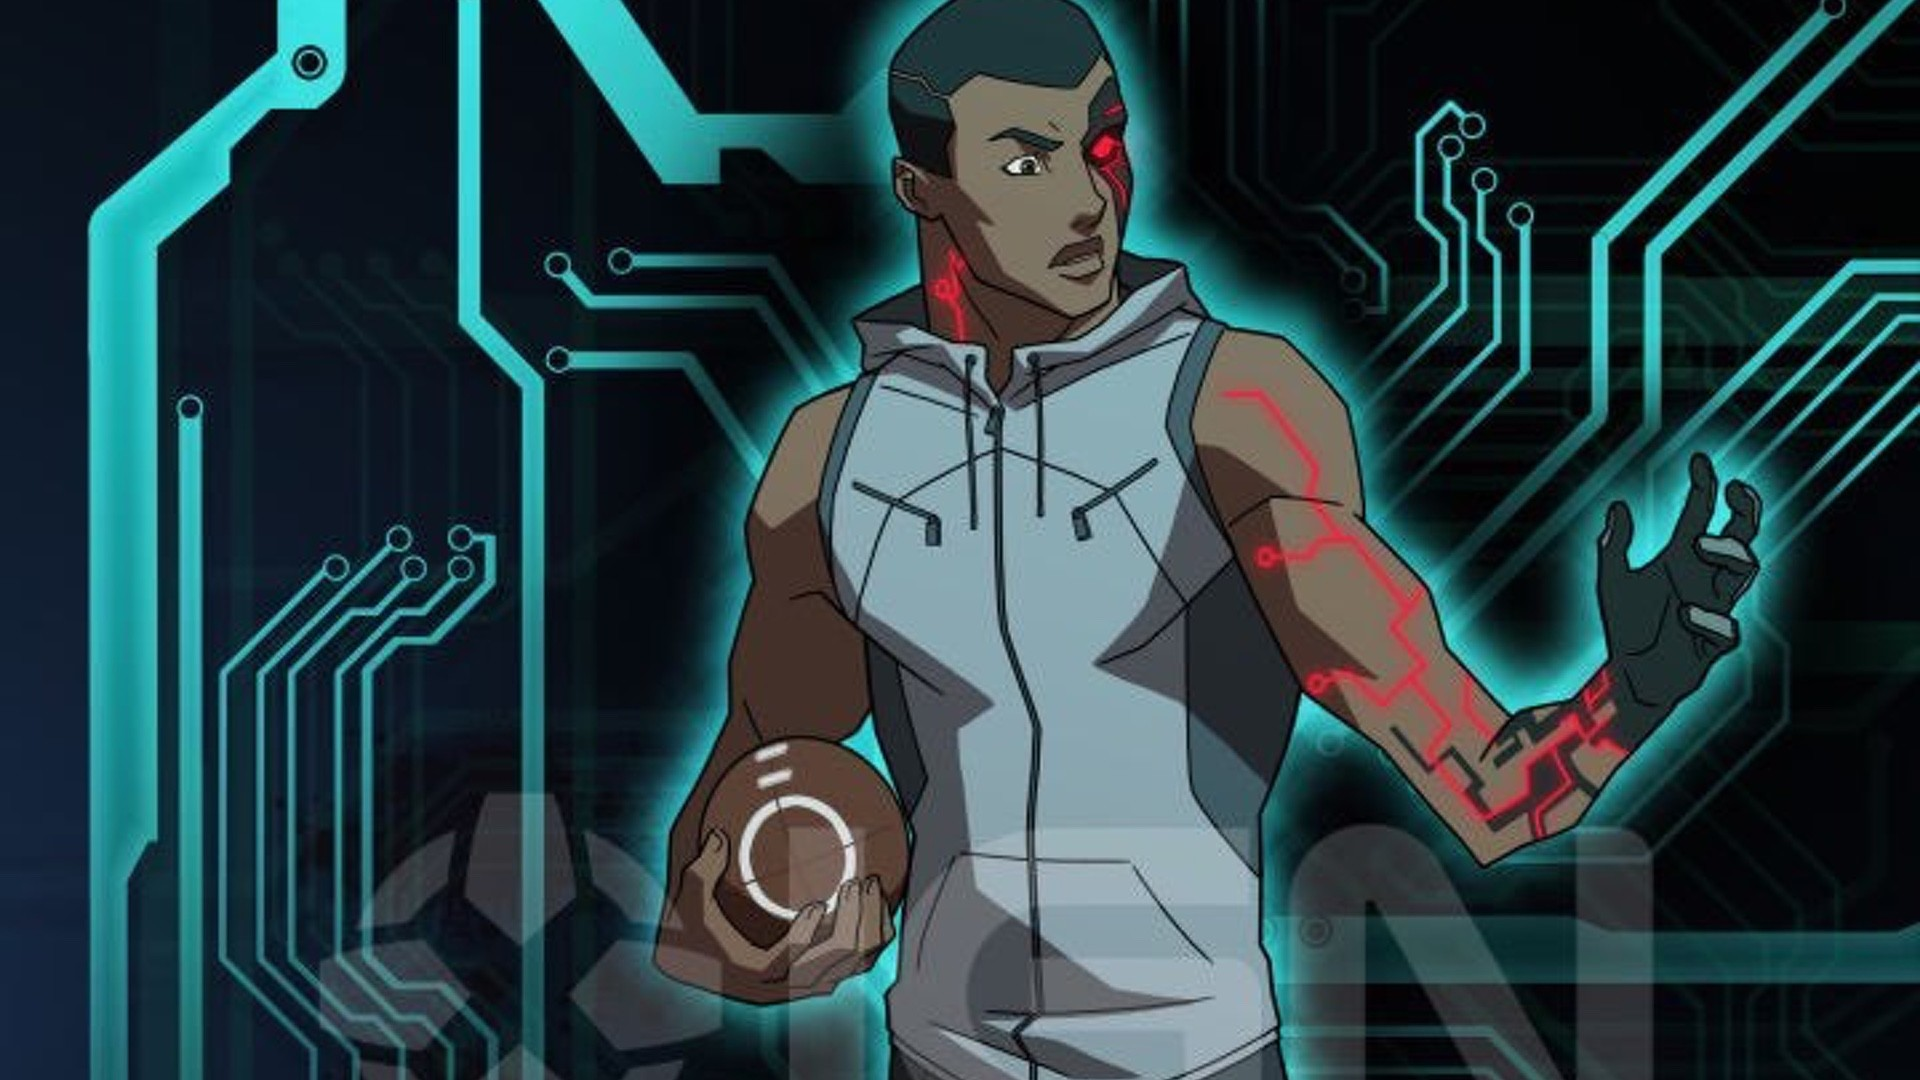 1920x1080 Here's our first look at what Victor Stone will look like as Cyborg in DC  Universe's Young Justice: Outsiders. The character is about to make his  Young ...